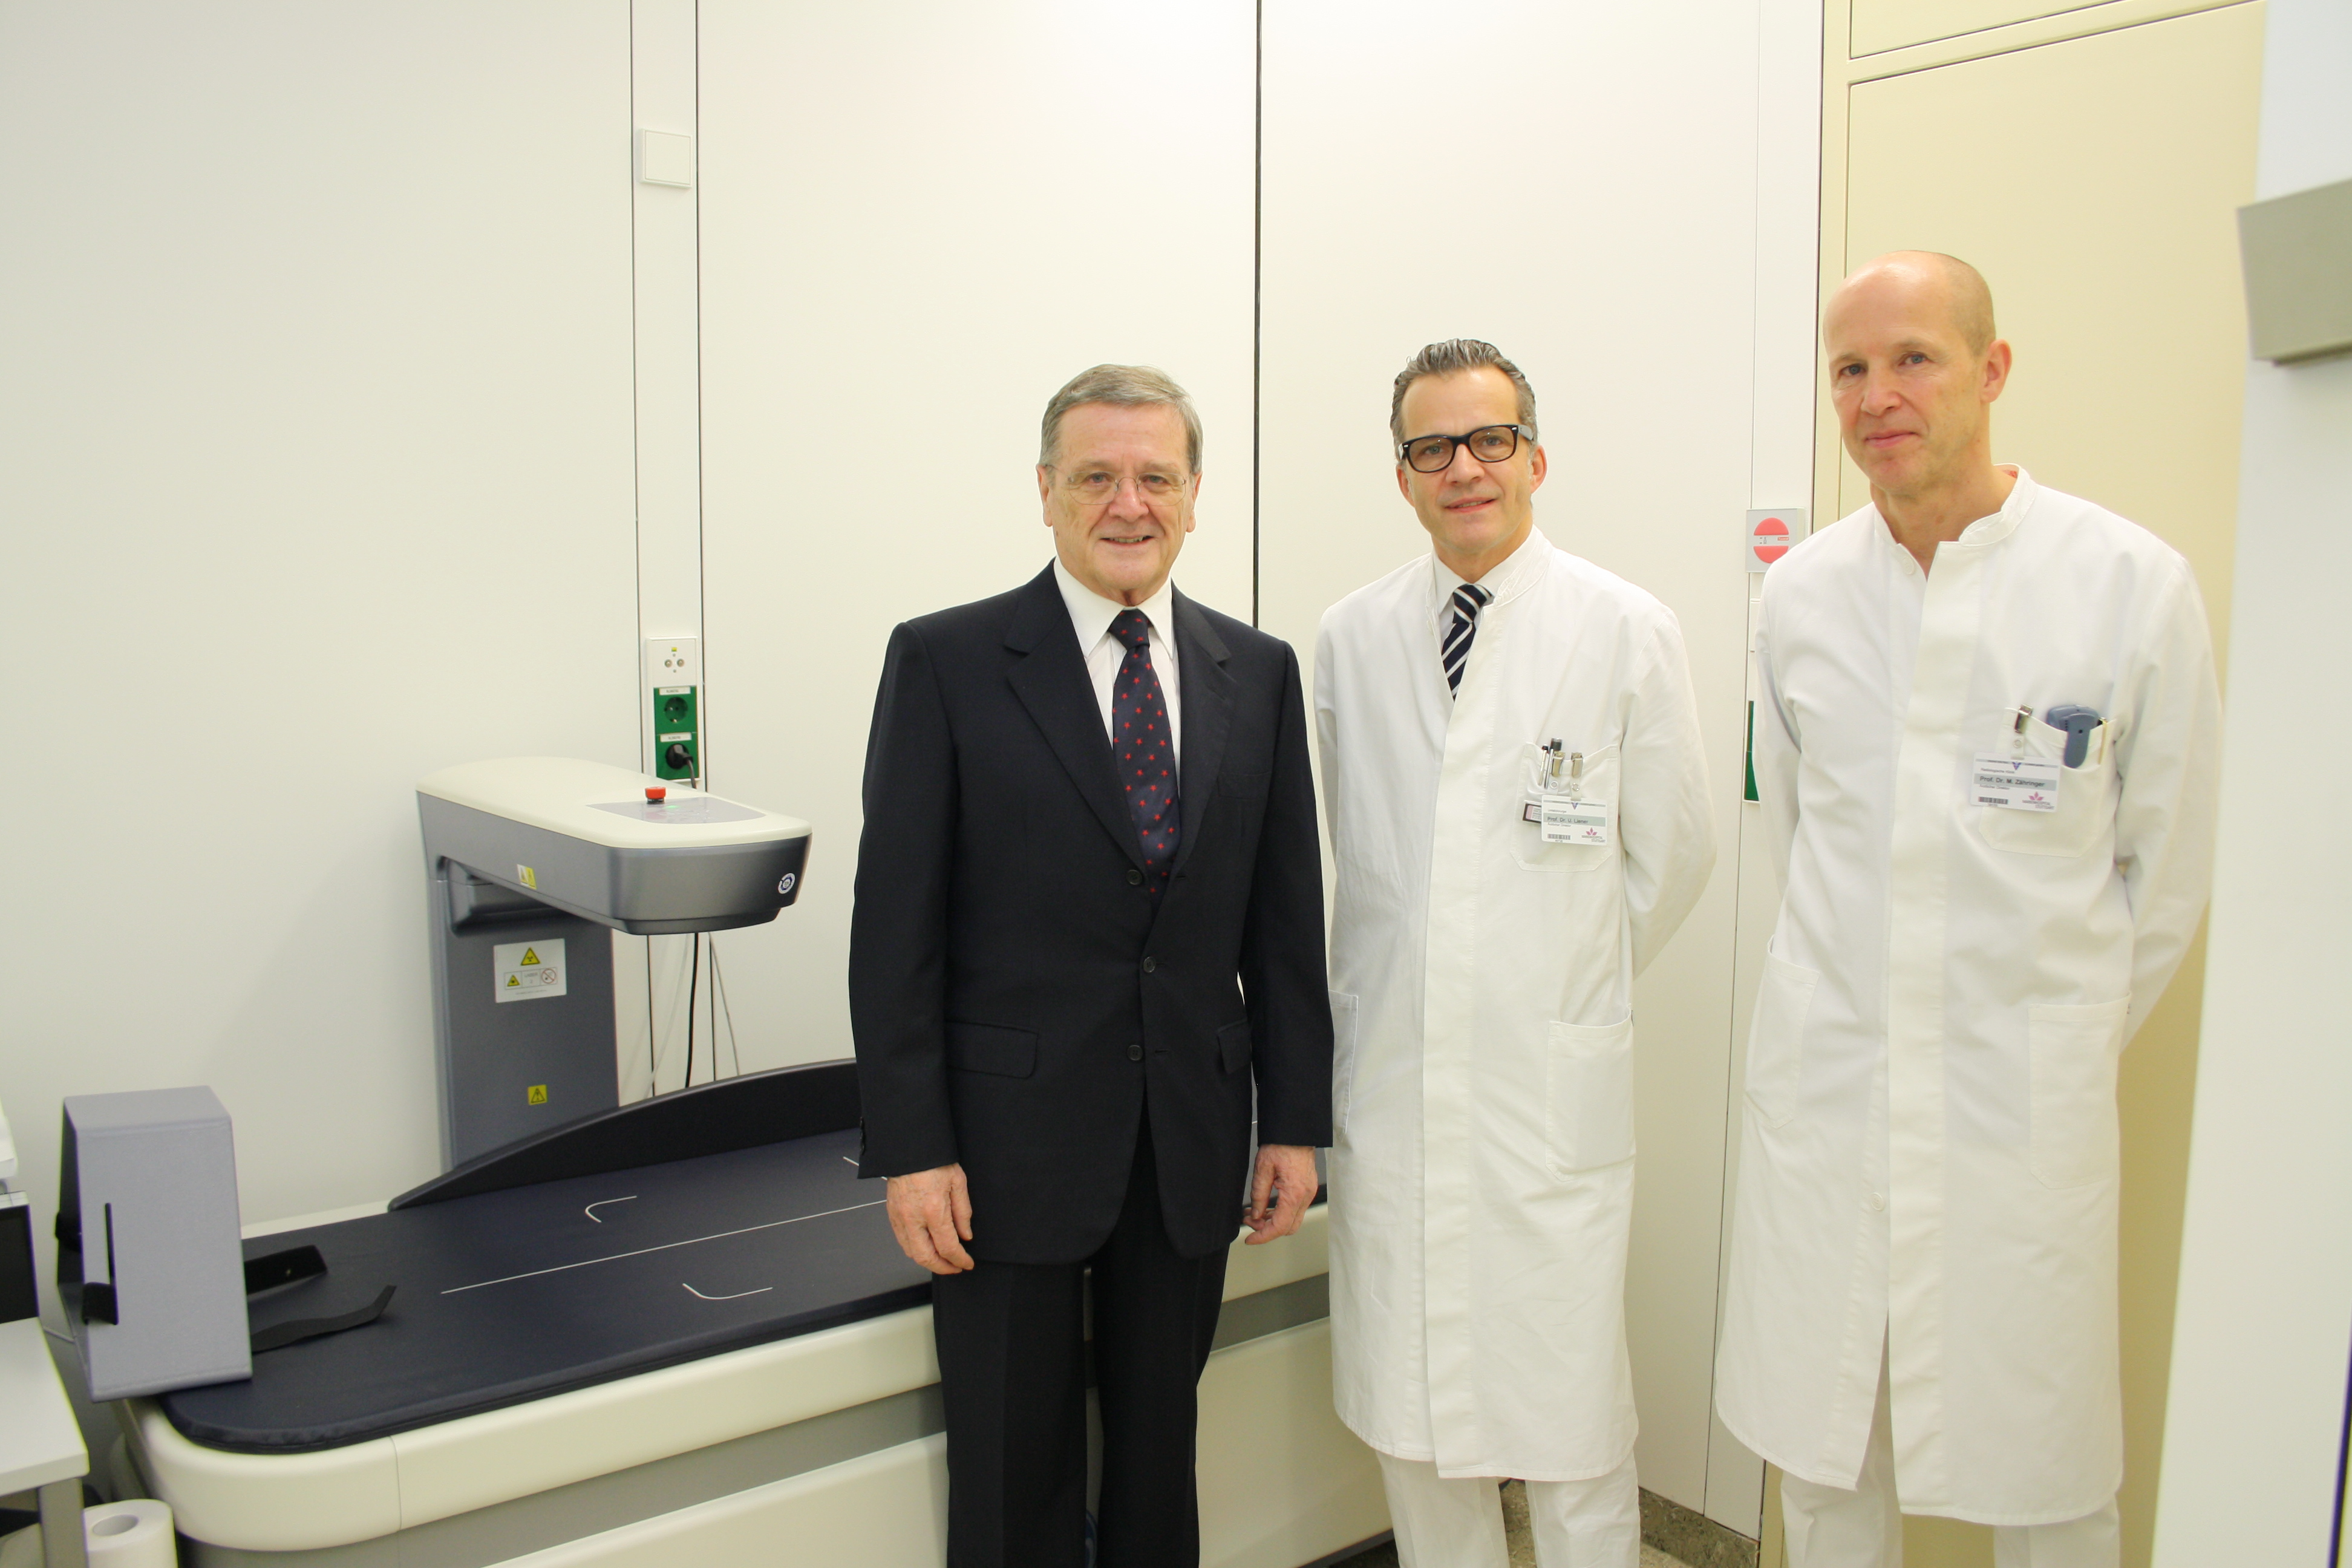 Robert Mayr, Foundation board member of the Eva Mayr-Stihl Foundation, presents Prof. Dr. med. Ulrich Liener and Prof. Dr. med. Markus Zähringer with the new Dual X-Ray Absorptiometry (DXA).